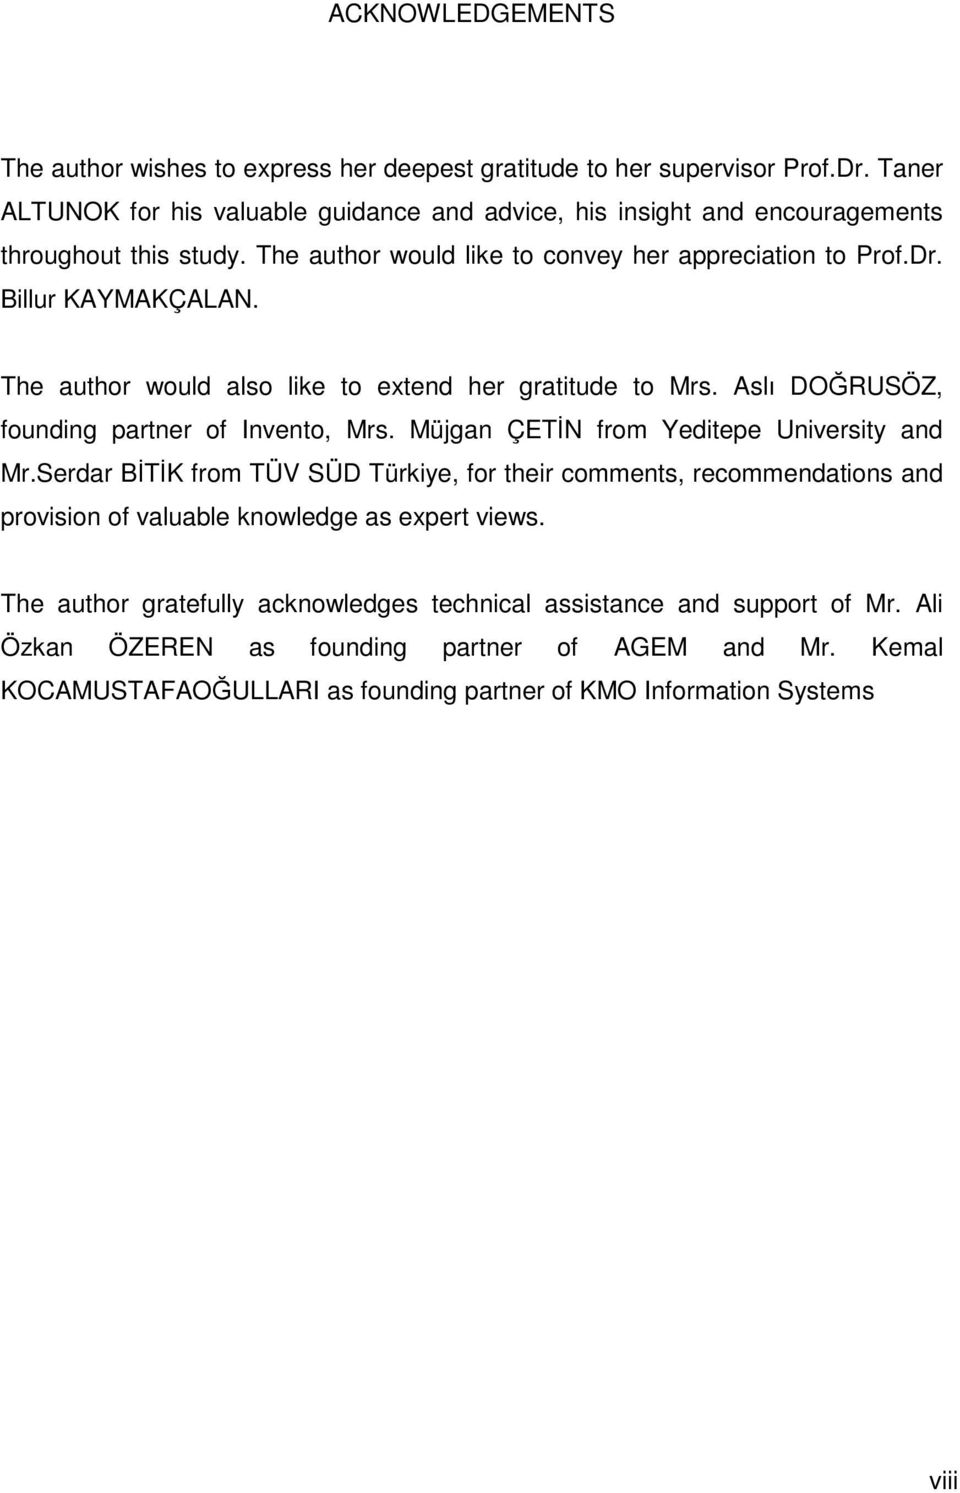 The author would also like to extend her gratitude to Mrs. Aslı DOĞRUSÖZ, founding partner of Invento, Mrs. Müjgan ÇETİN from Yeditepe University and Mr.